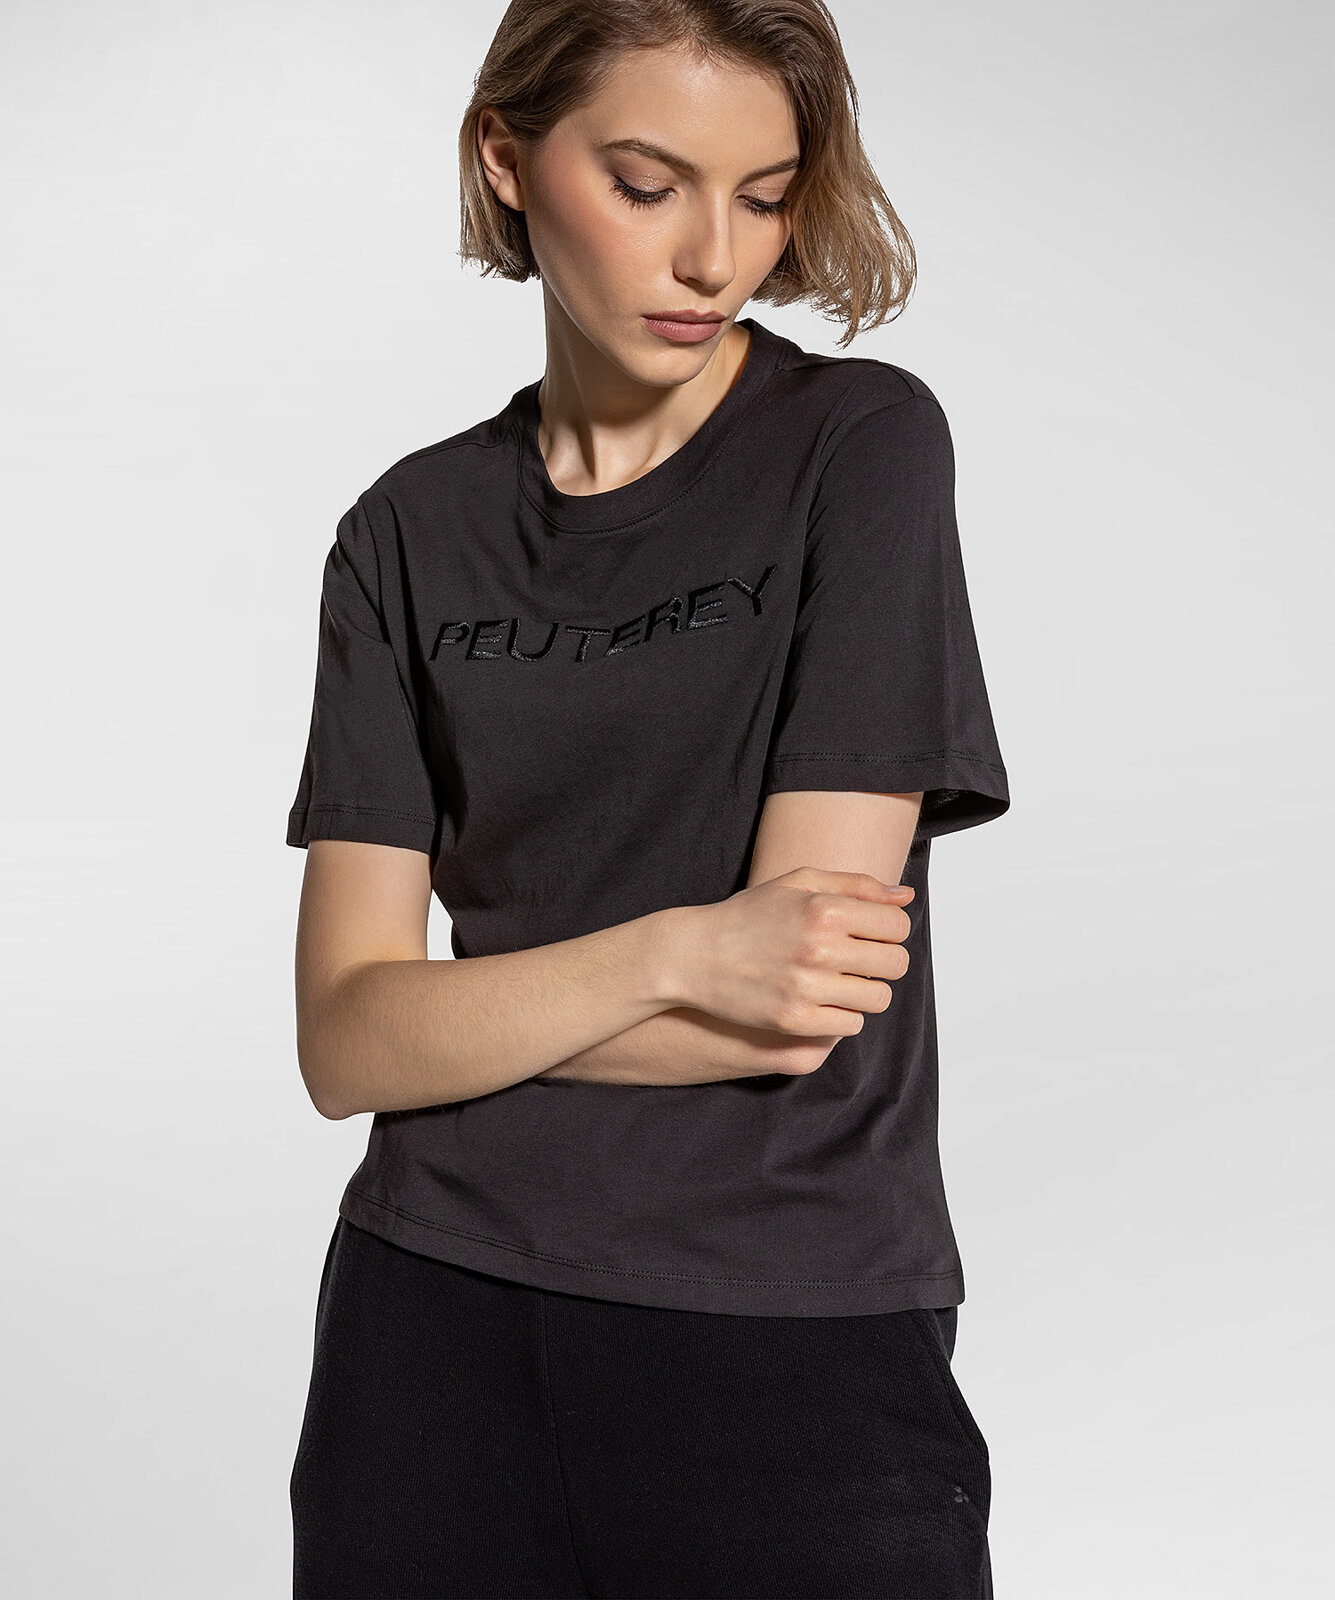 T-Shirt With Lettering Embroidery - Peuterey